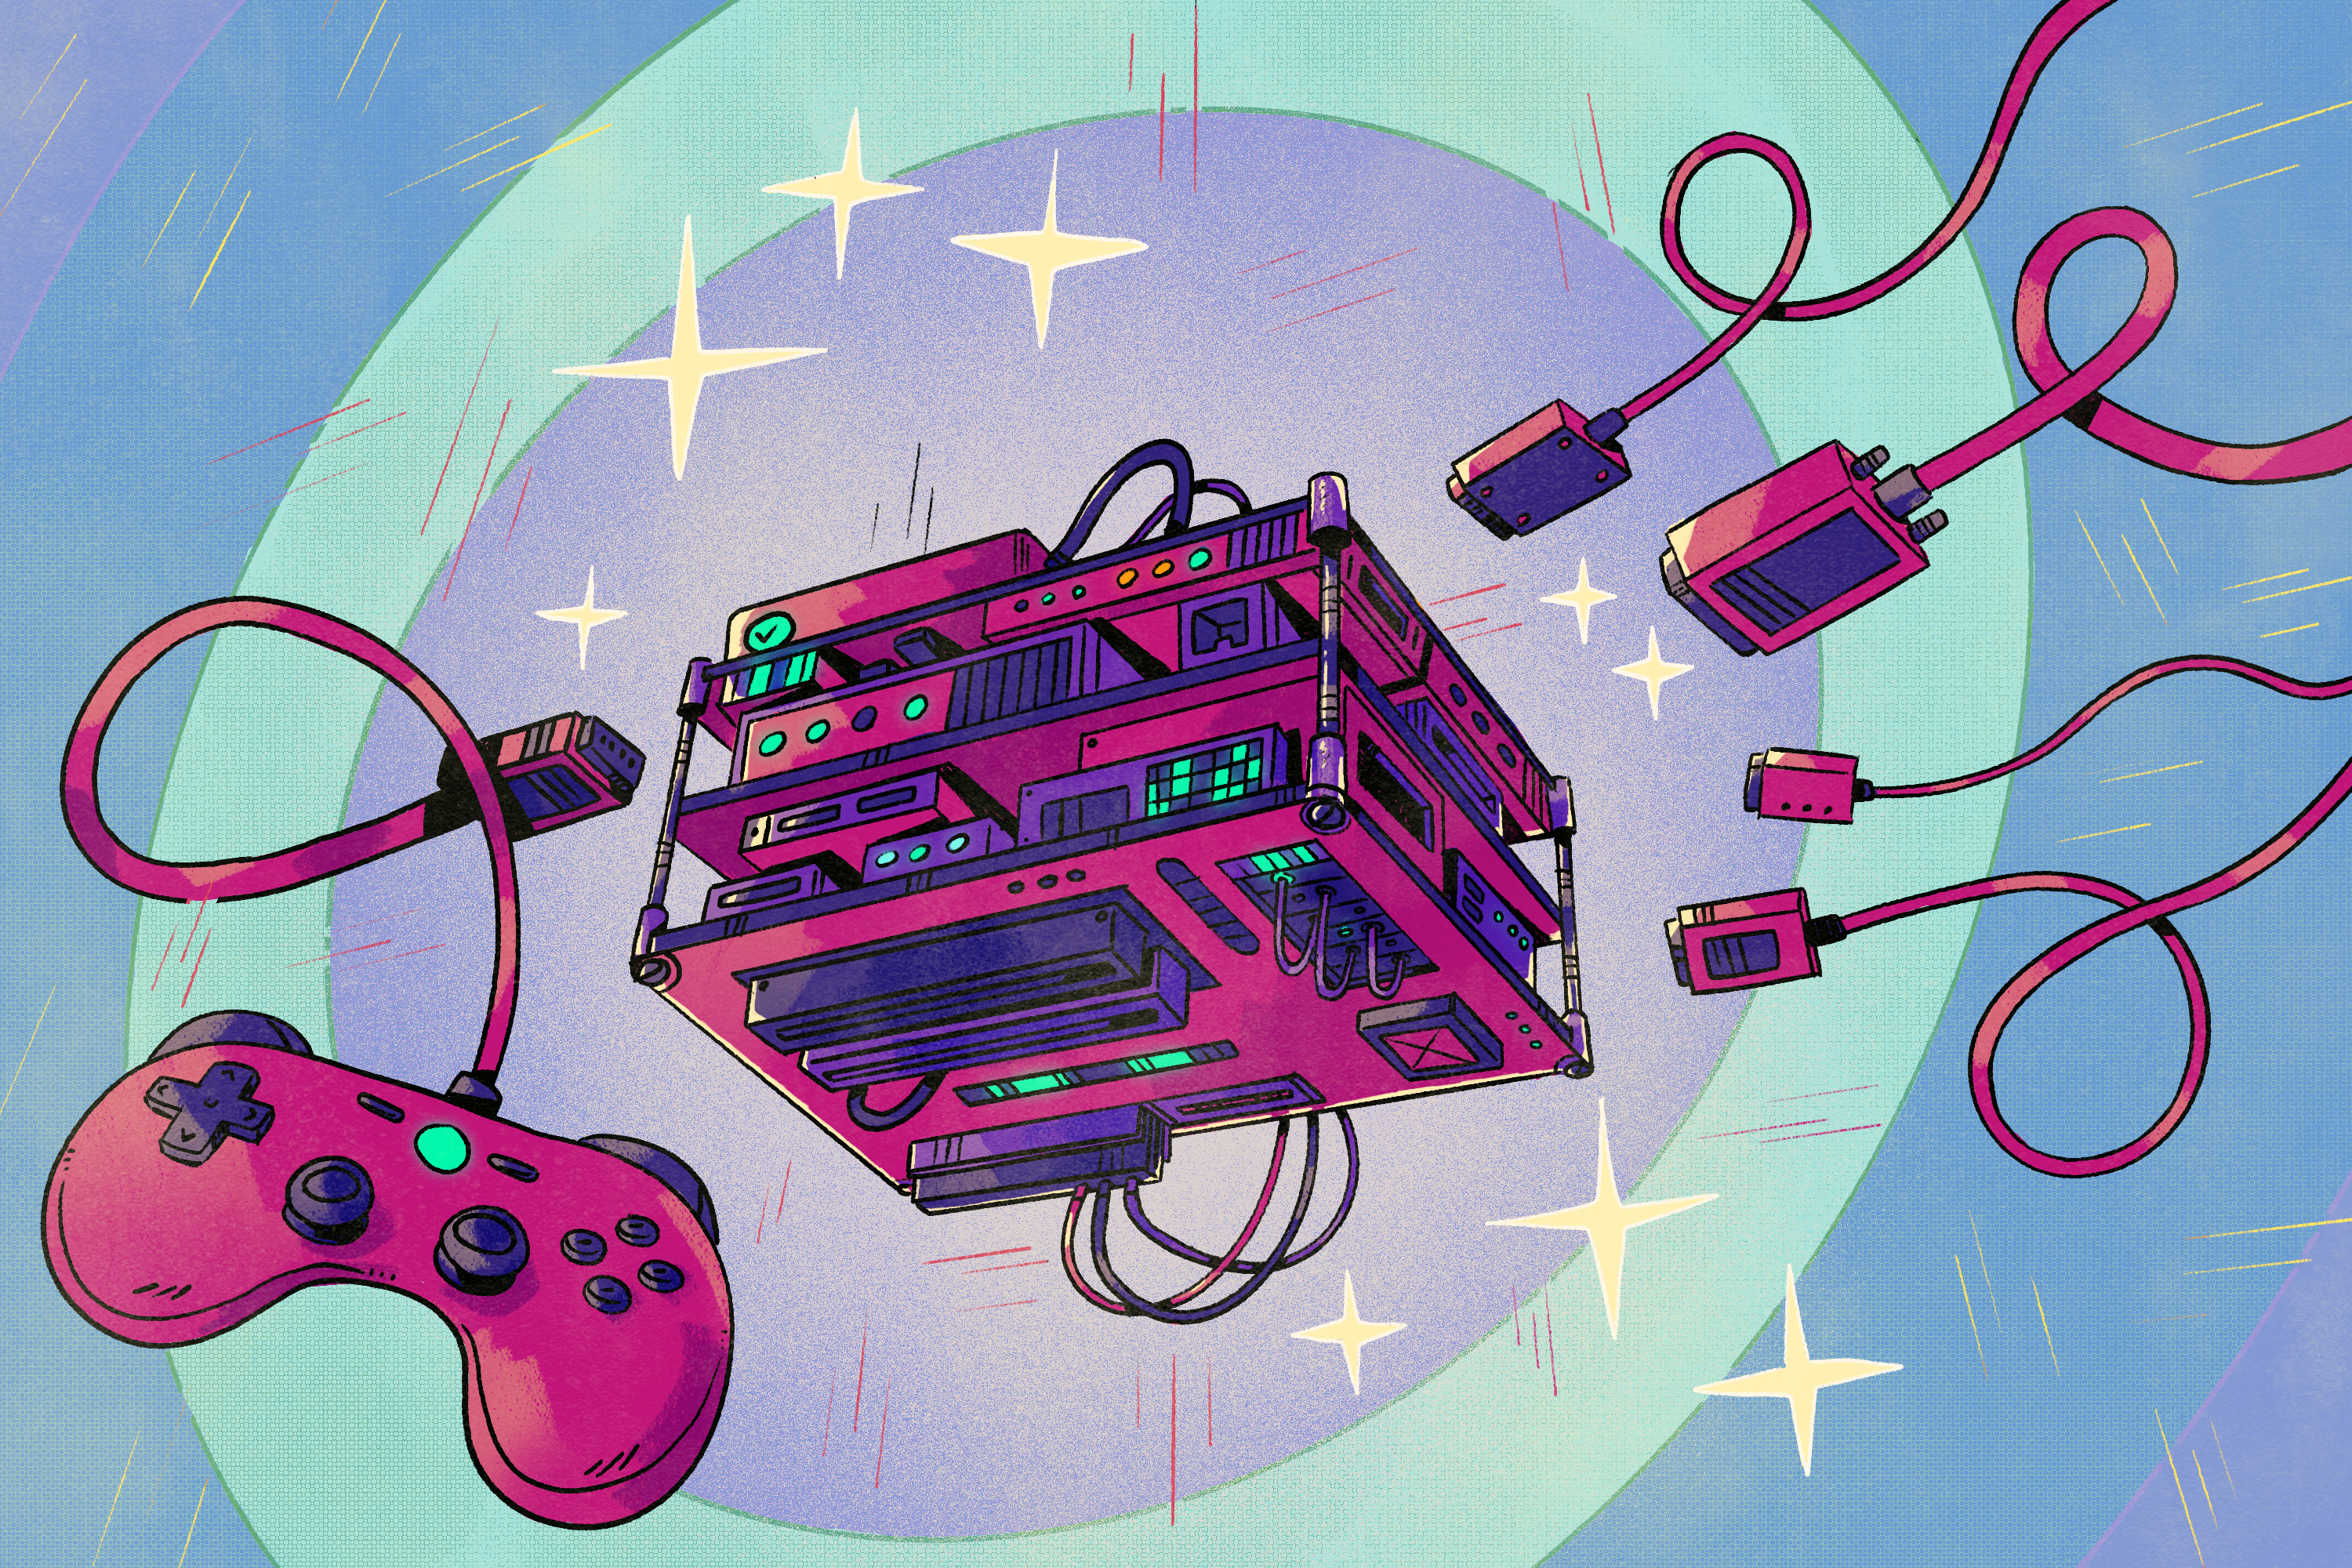 Illustration of game controller, cables and a MiSTer FPGA console